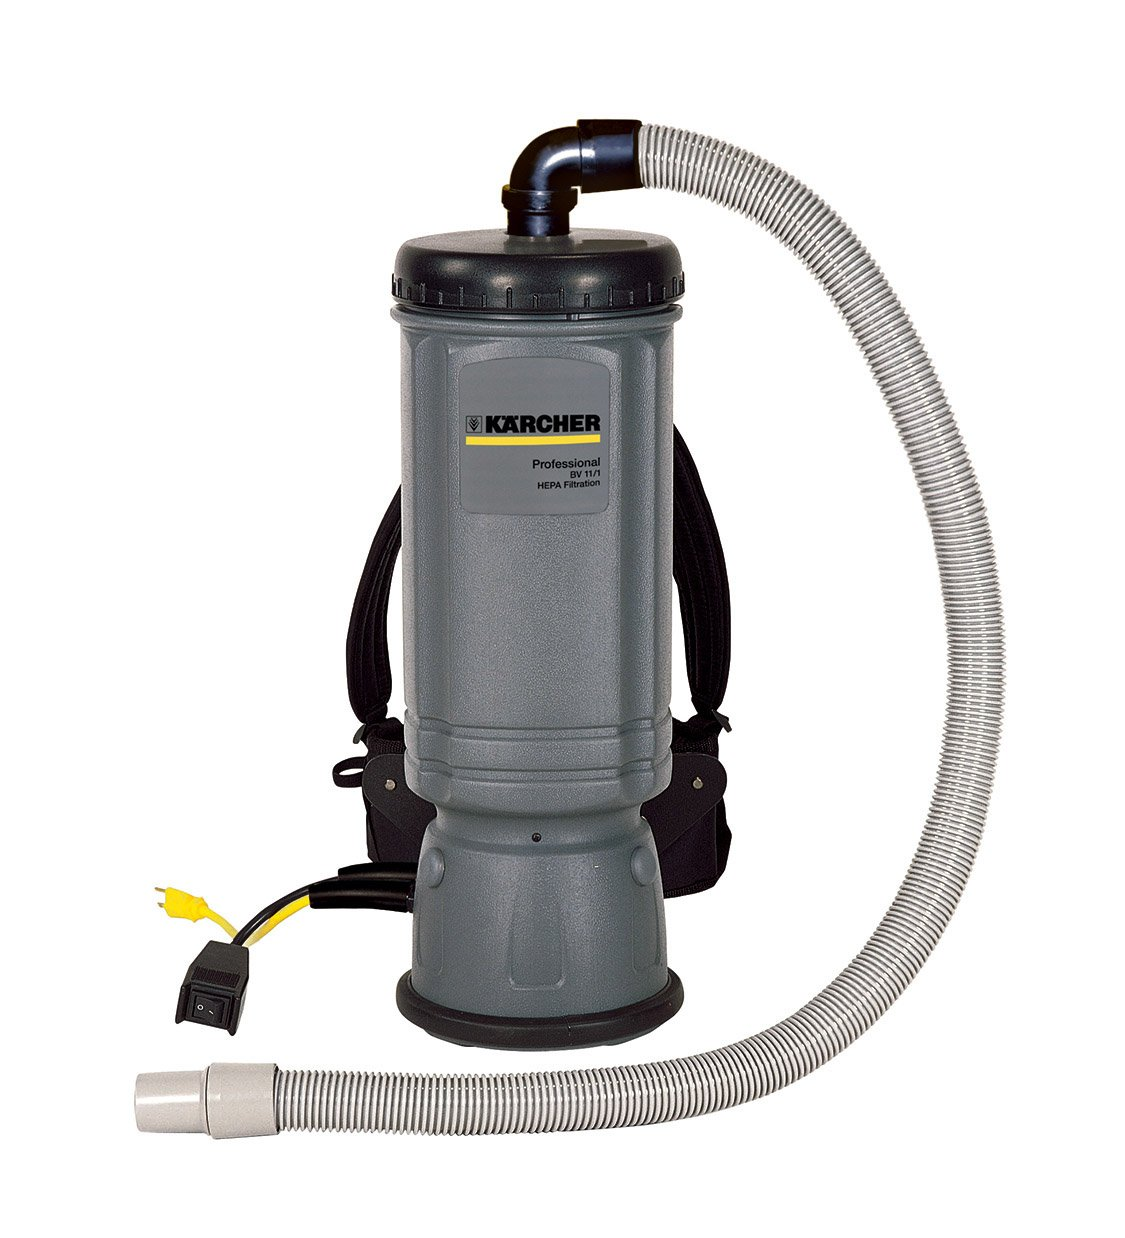 how to clean karcher vacuum filter